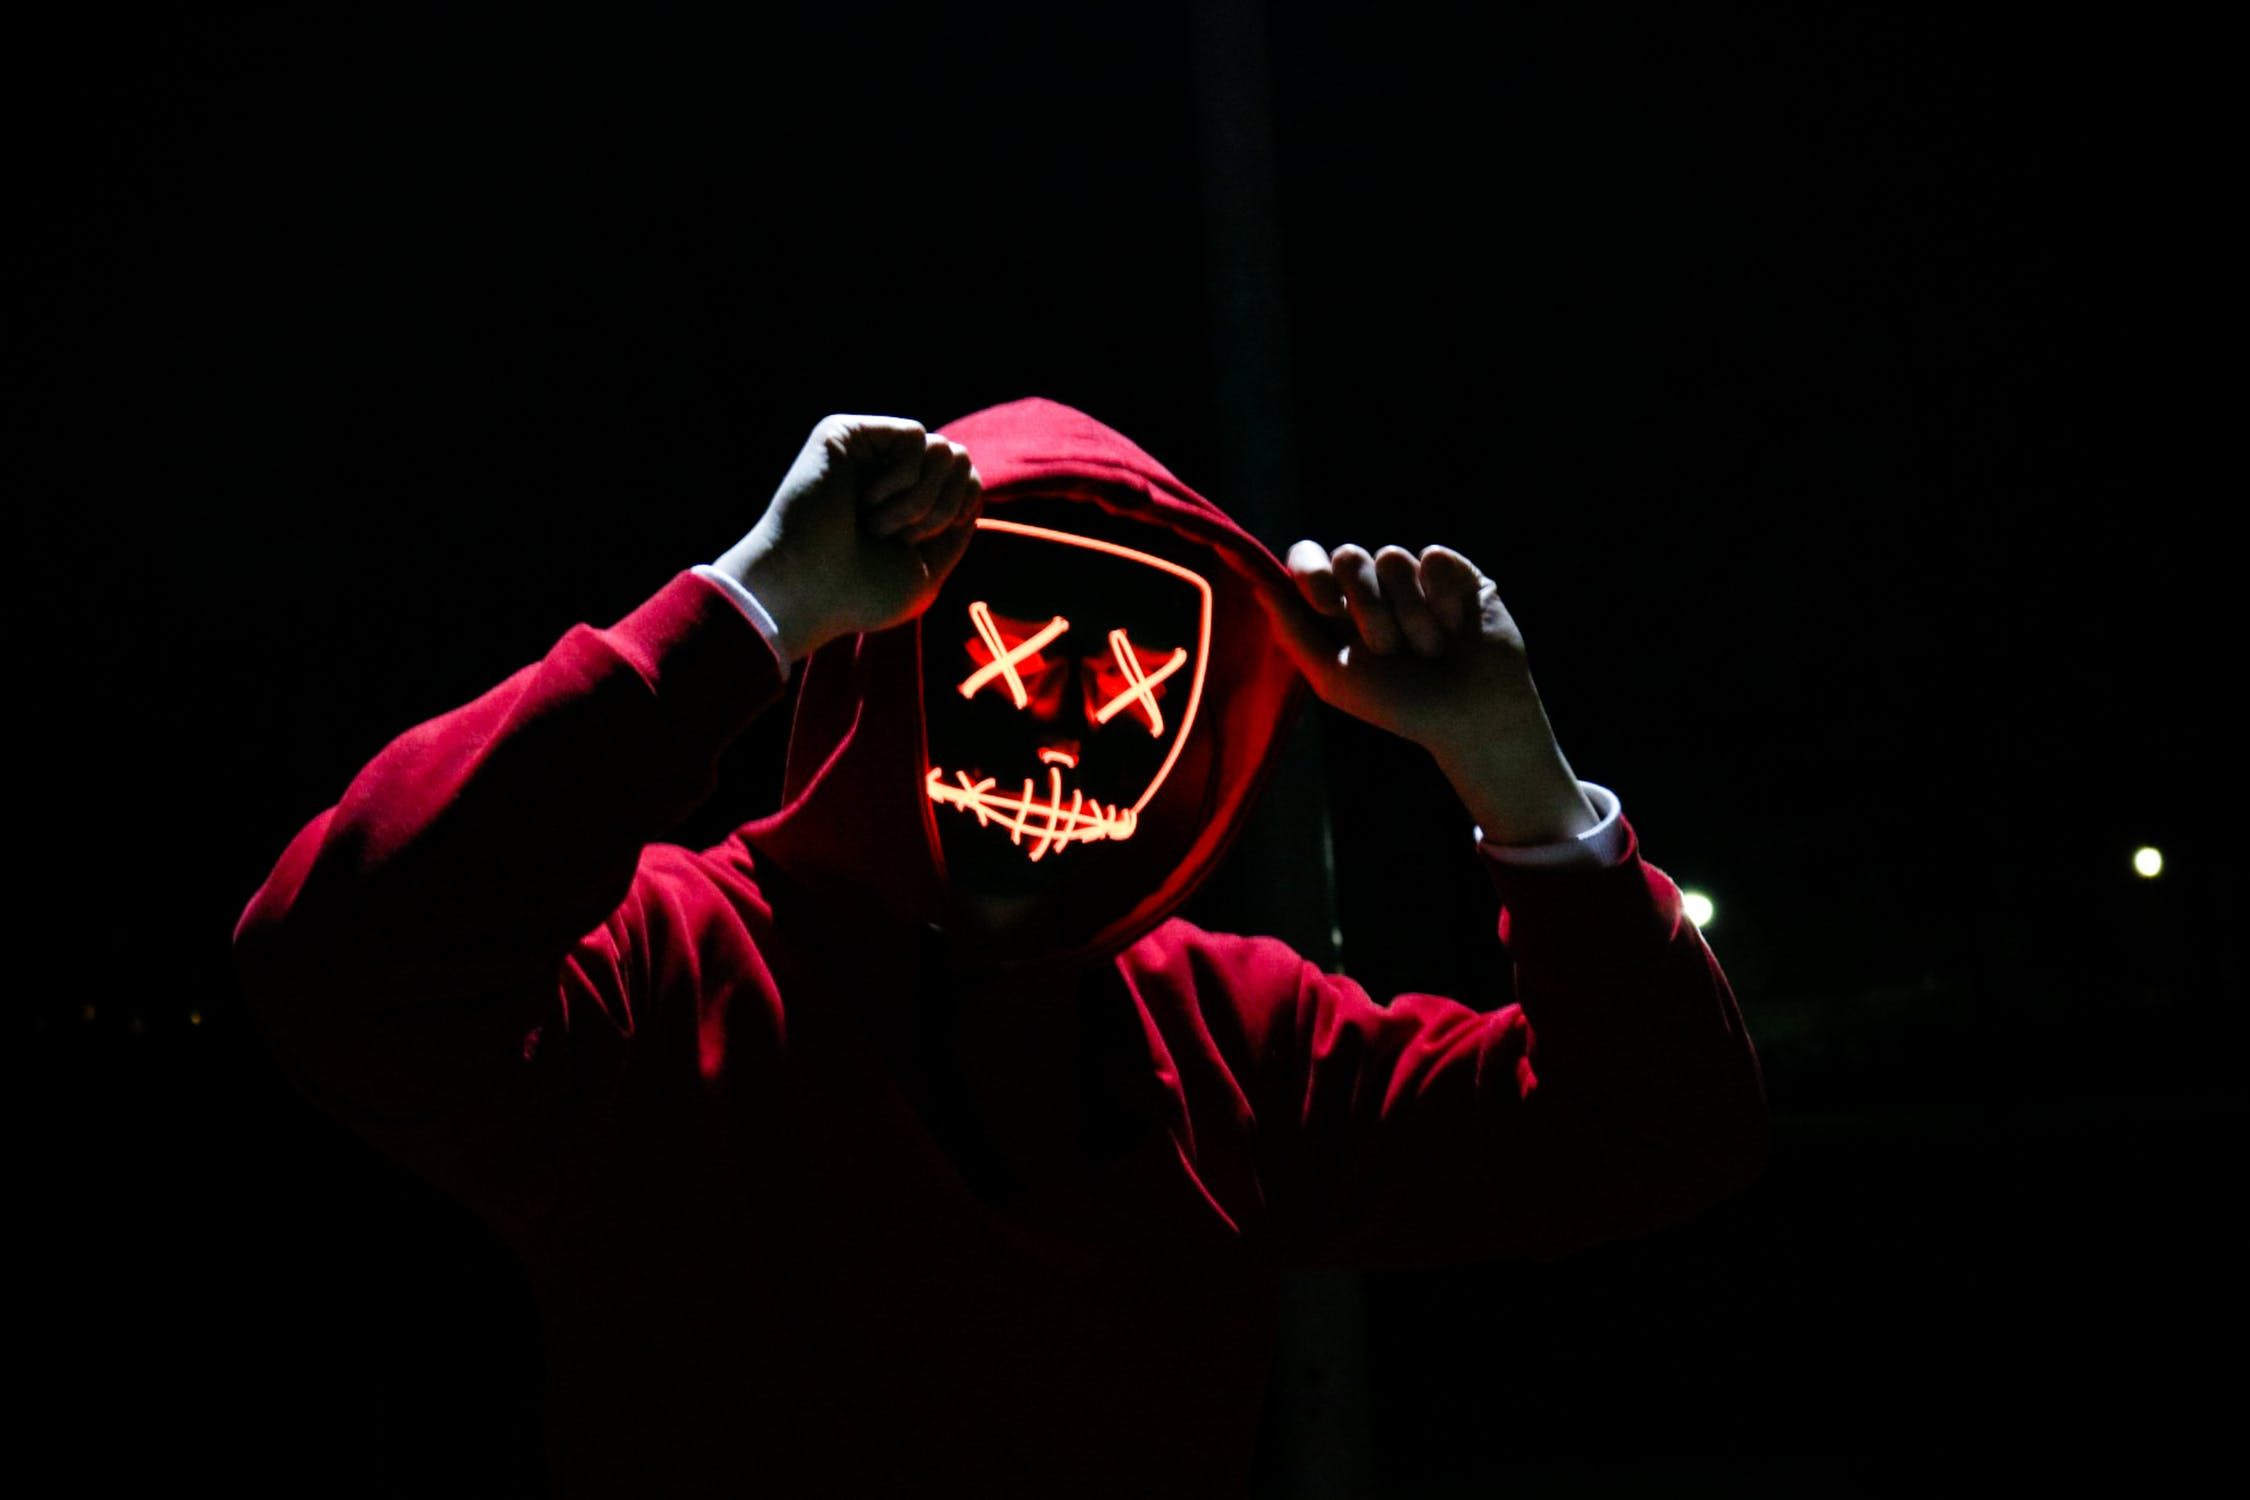 Top 5 Scariest Movies Of All Time Black Wallpaper Red Hoodie Free Stock Photos